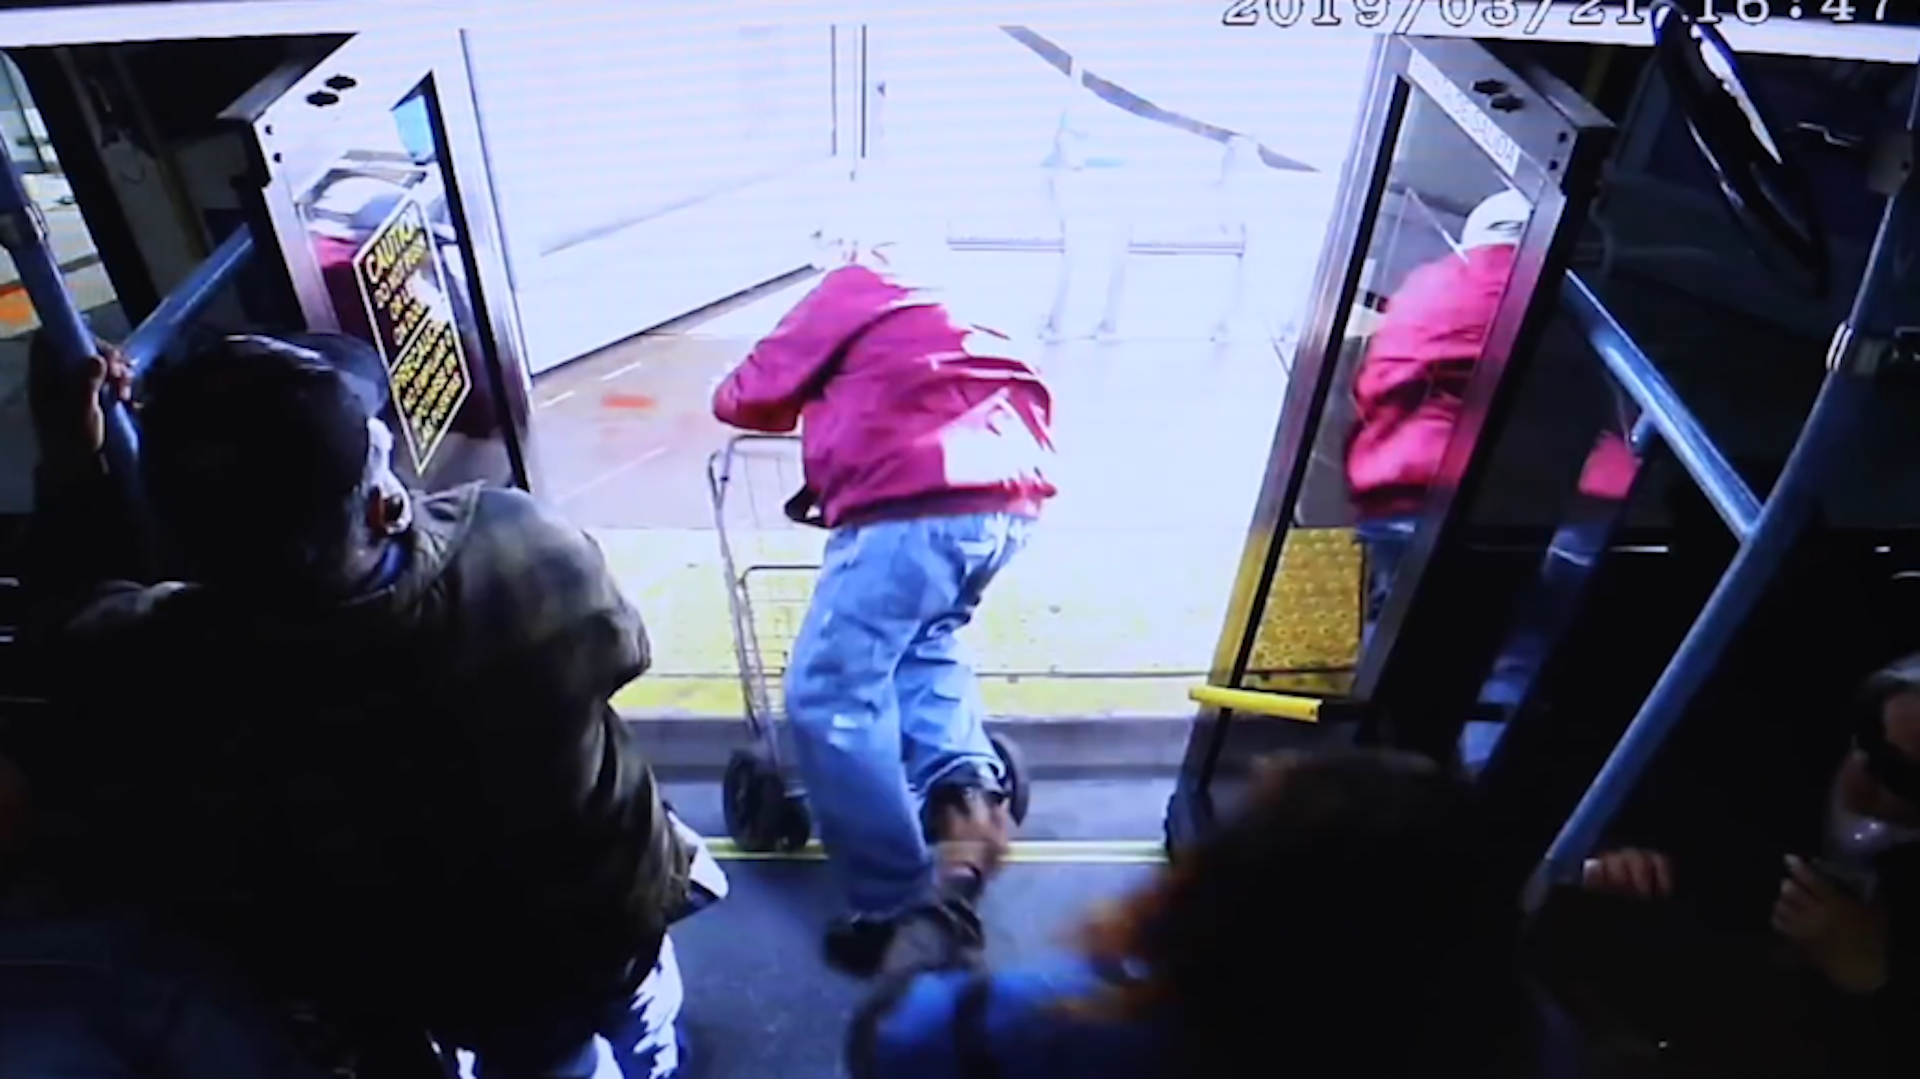 Video shows a 74-year-old pushed off a bus. Police have charged a woman with murder.